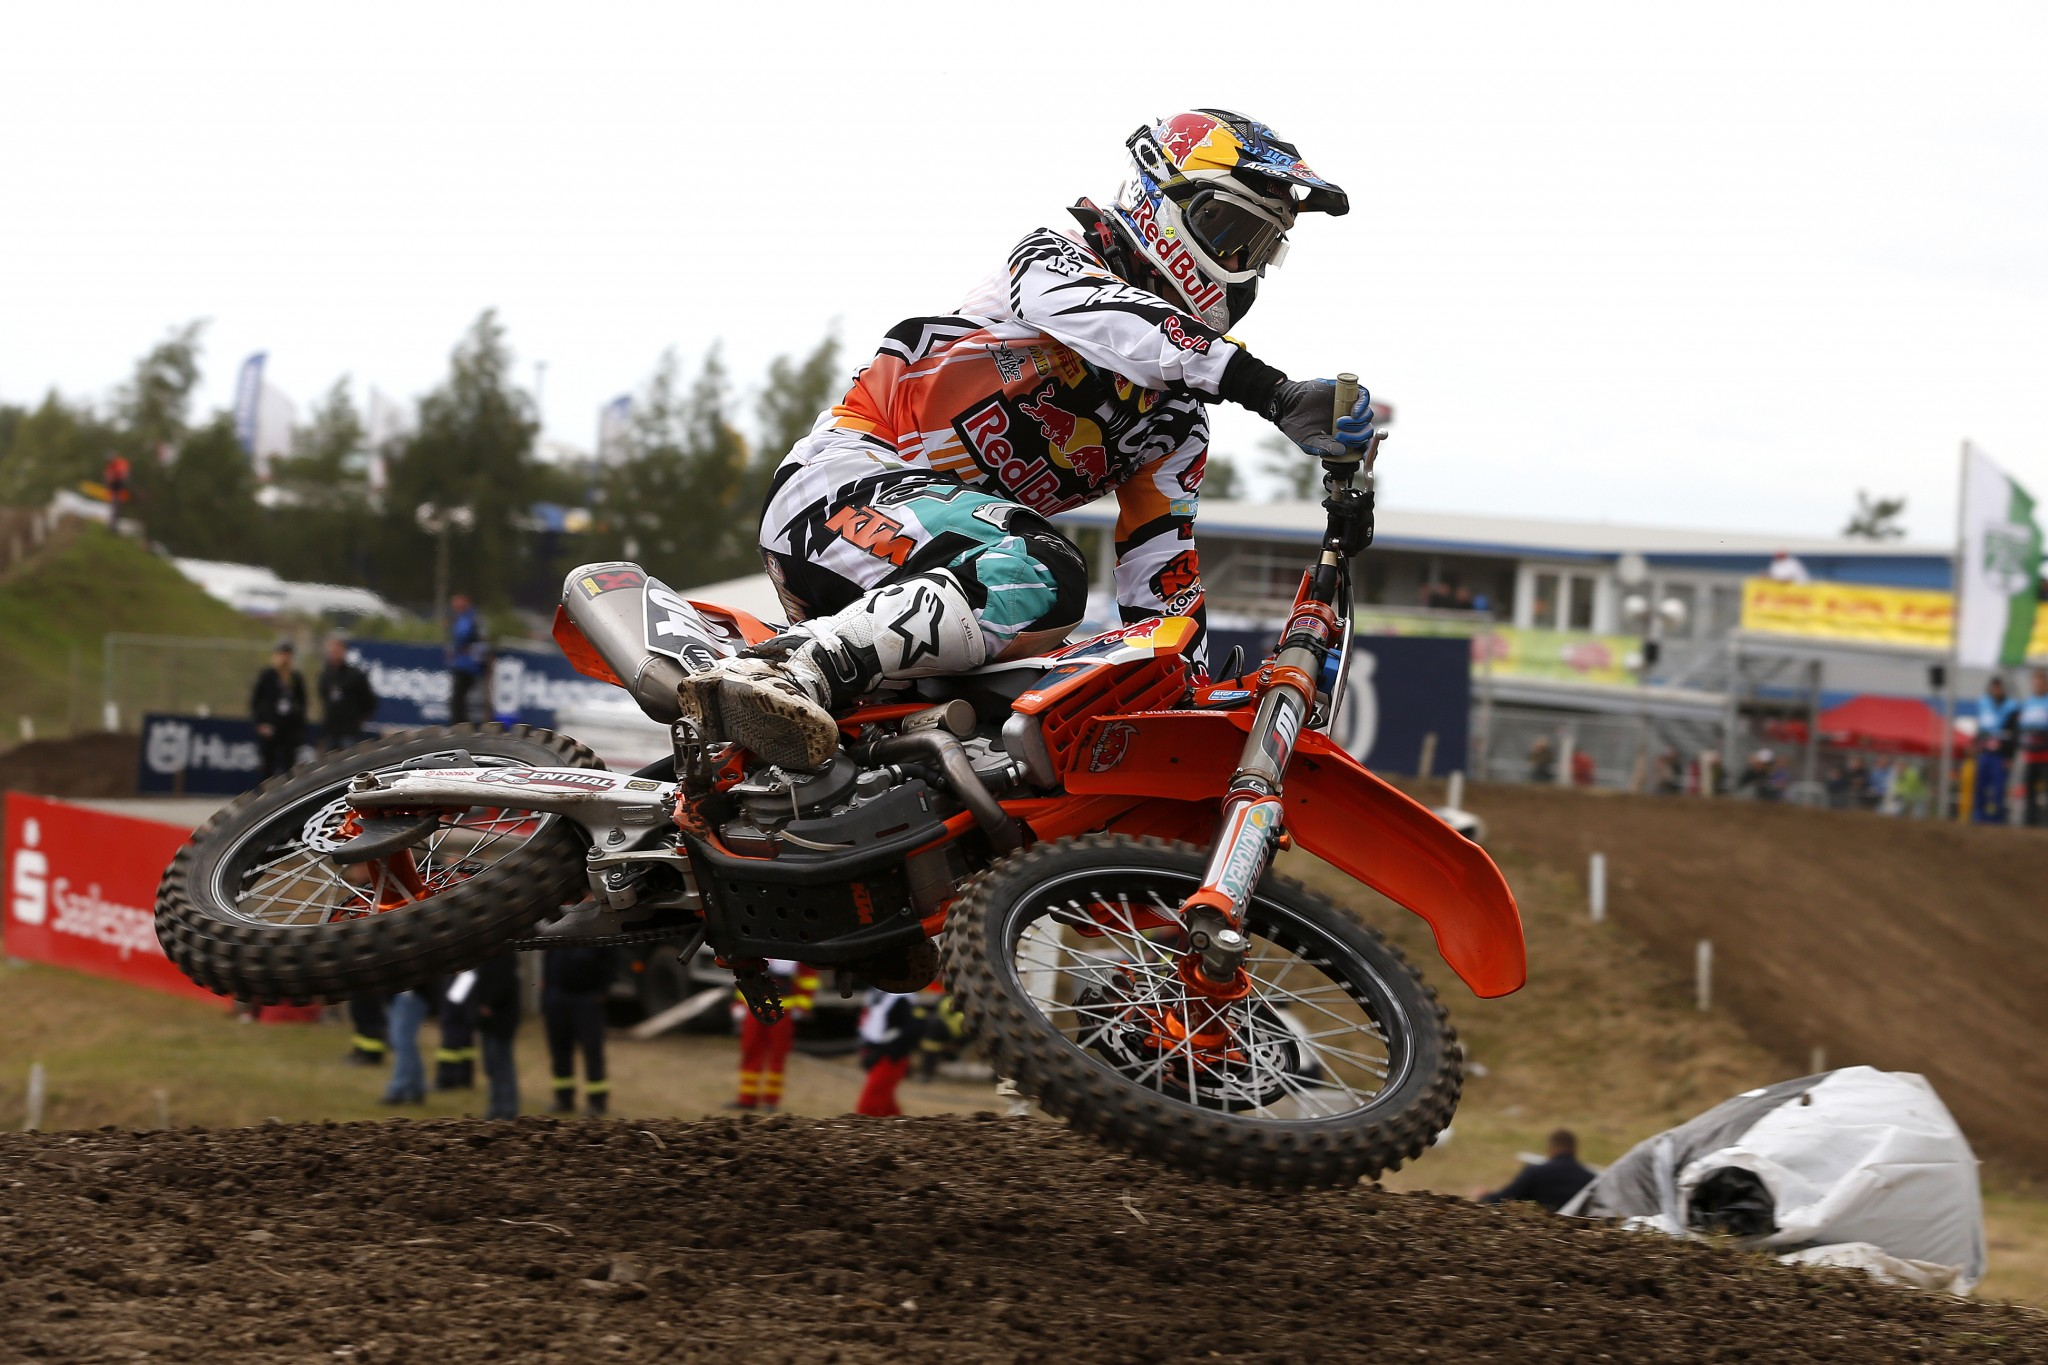 89489_Herlings_MXGP_2014_R11_XR_0440